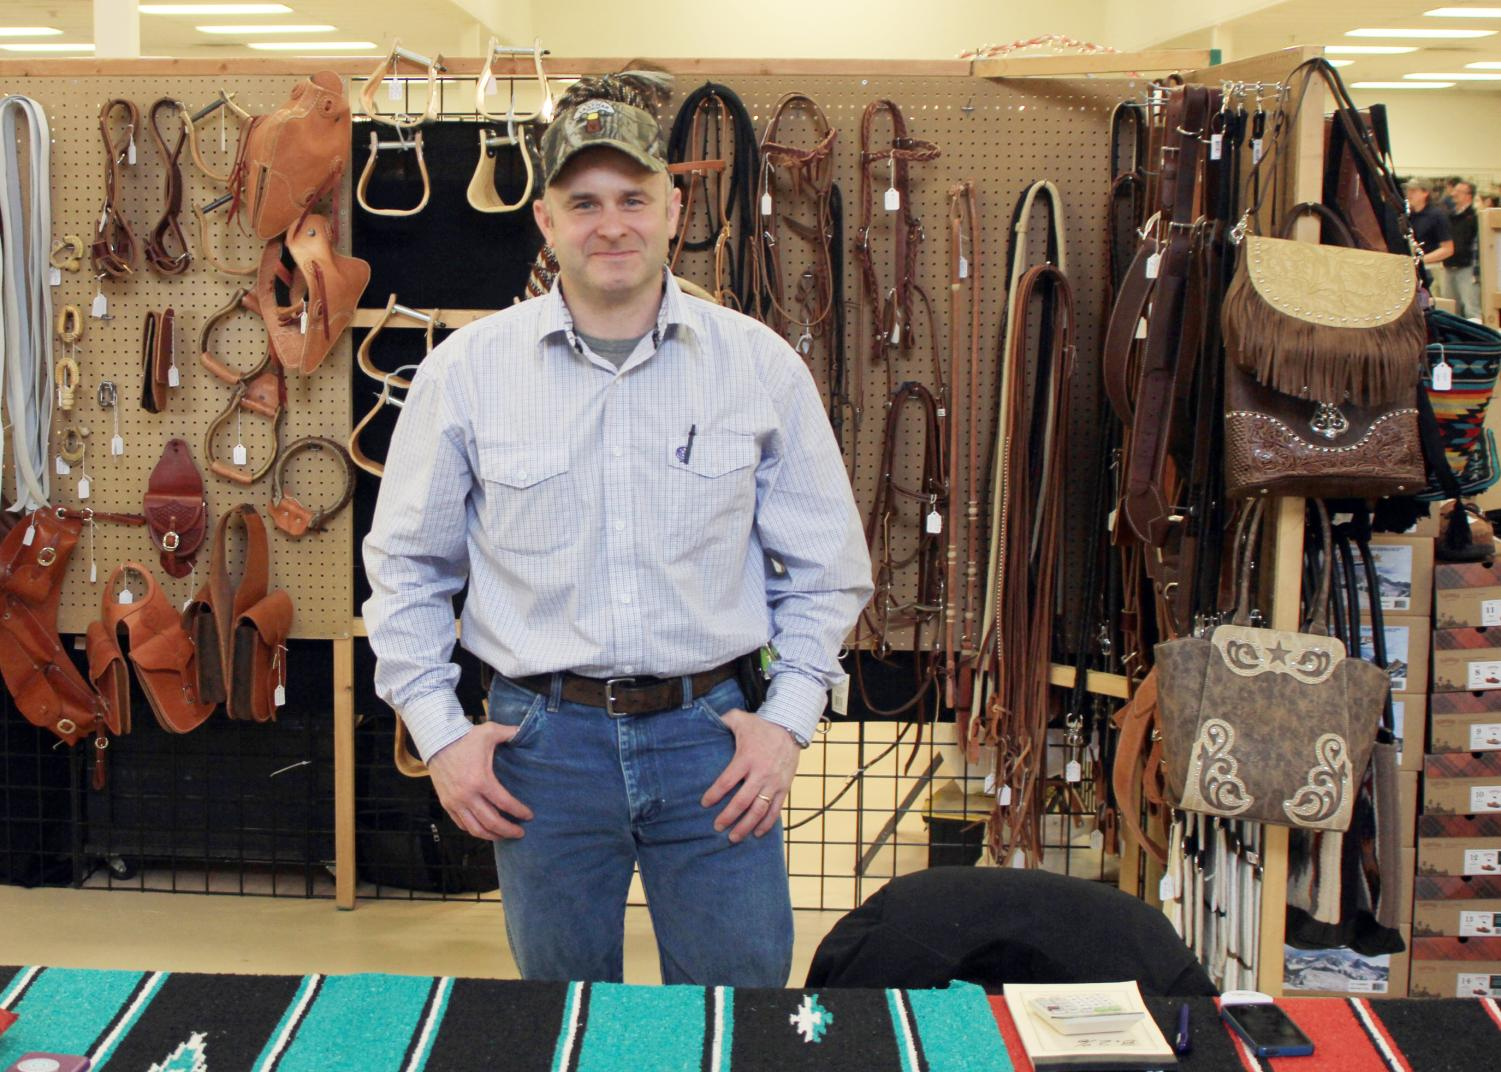 Don Bacon's Leather Shop owner stands in front of his booth last year at the Spirit of the West festival. Bacon's Leather Shop is a local shop that makes custom leather work.